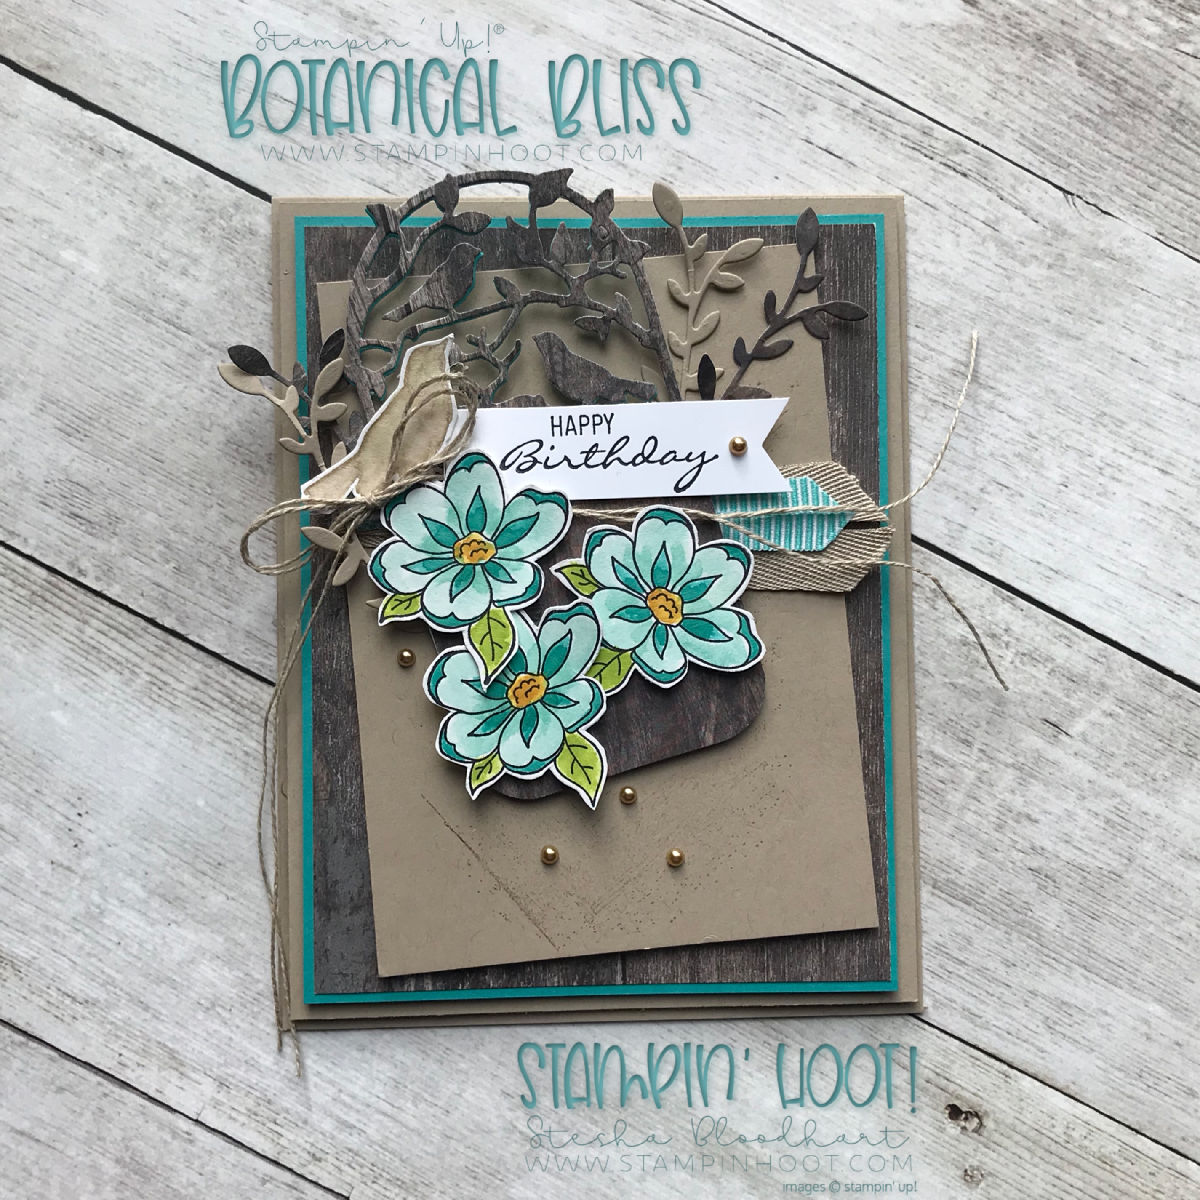 Botanical Bliss Bundle by Stampin' Up! Birthday Card created by Stesha Bloodhart, Stampin' Hoot! for #gdp162 Sketch Challenge #steshabloodhart #stampinhoot